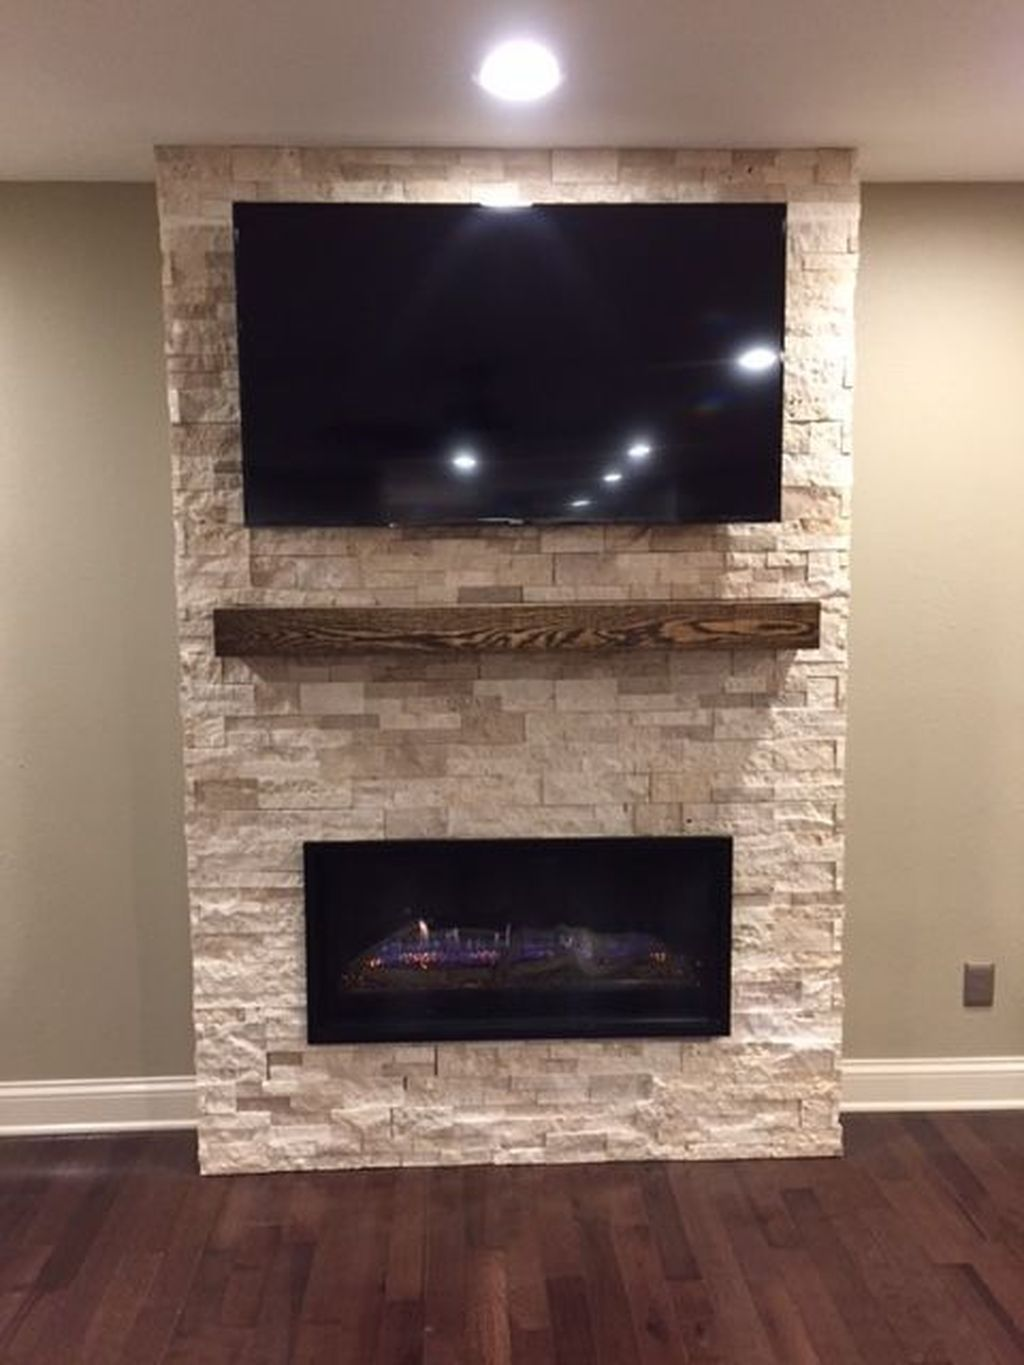 20 Fabulous Fireplace Design Ideas To Try Fireplace Design Modern Fireplace Home Fireplace